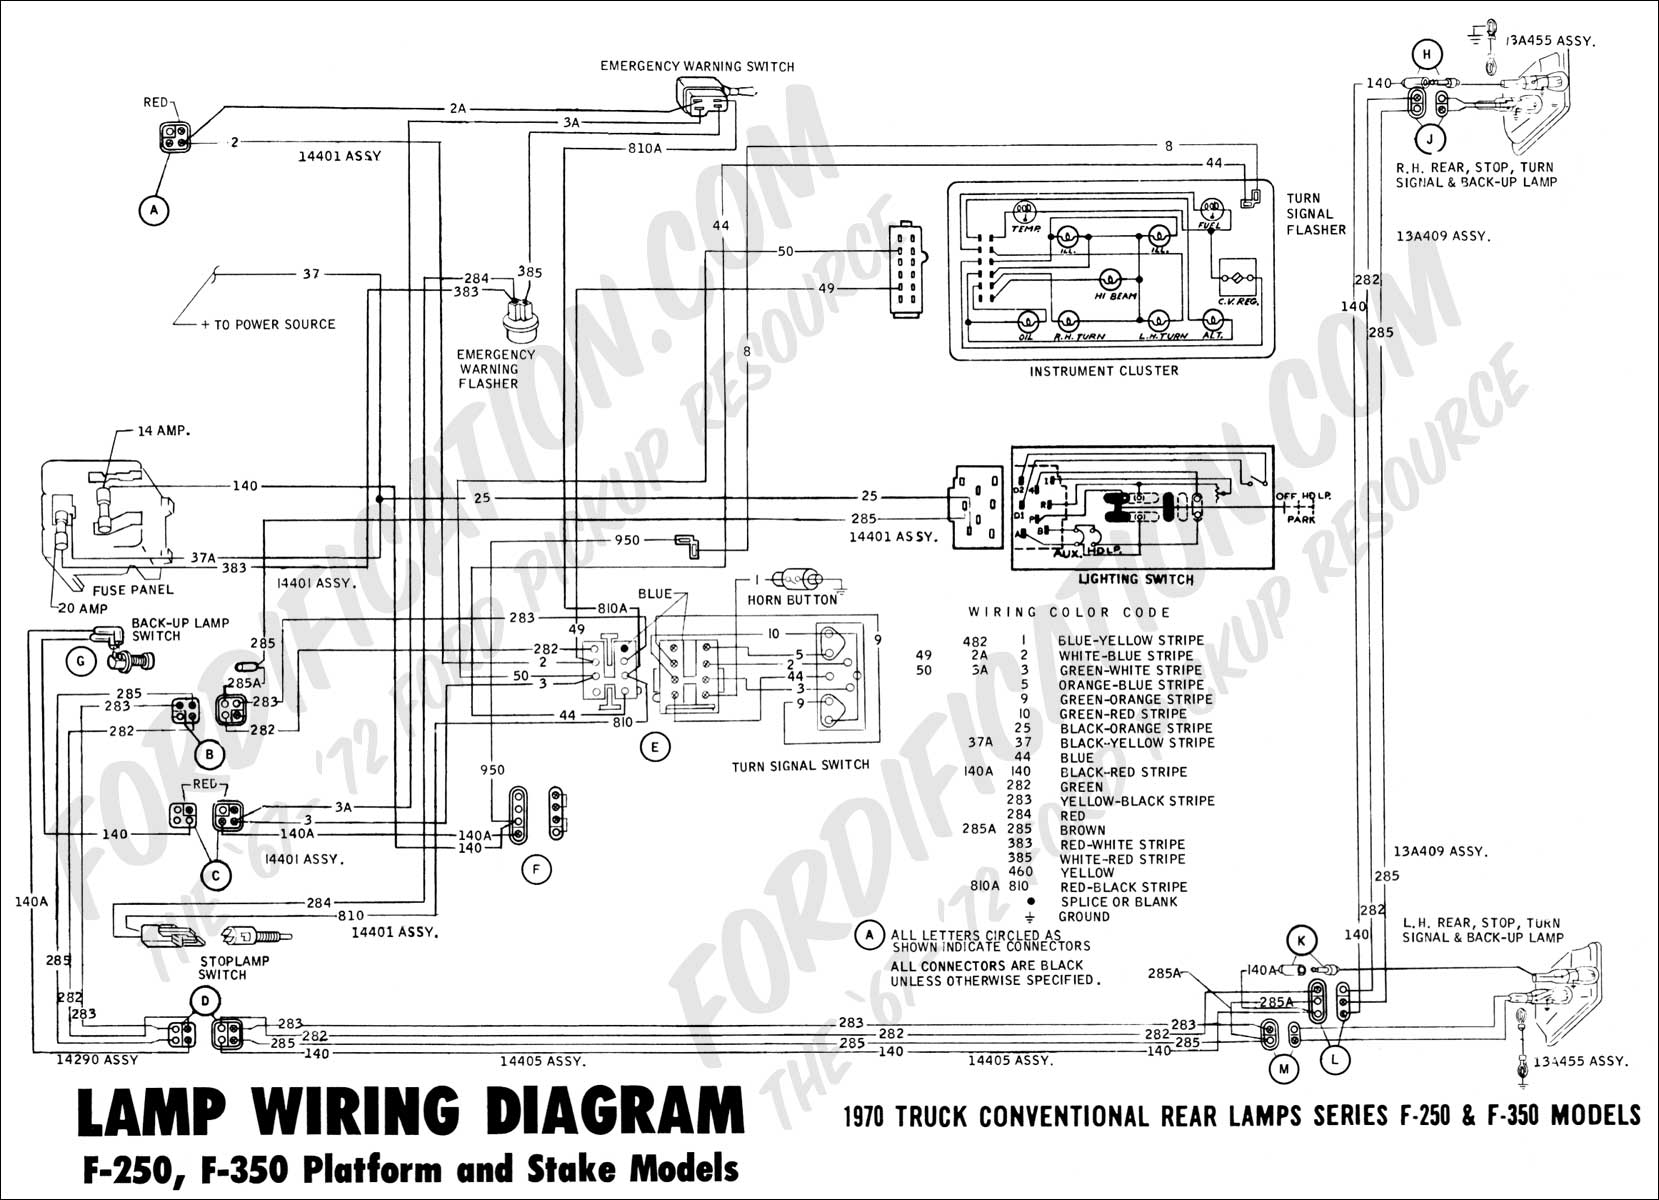 1993 F150 Headlight Wiring Diagram The Portal And Forum Of 1986 Ford F 150 Engine Switch 1995 F250 Diagrams Rh 89 Treatchildtrauma De Gauge Dashboard